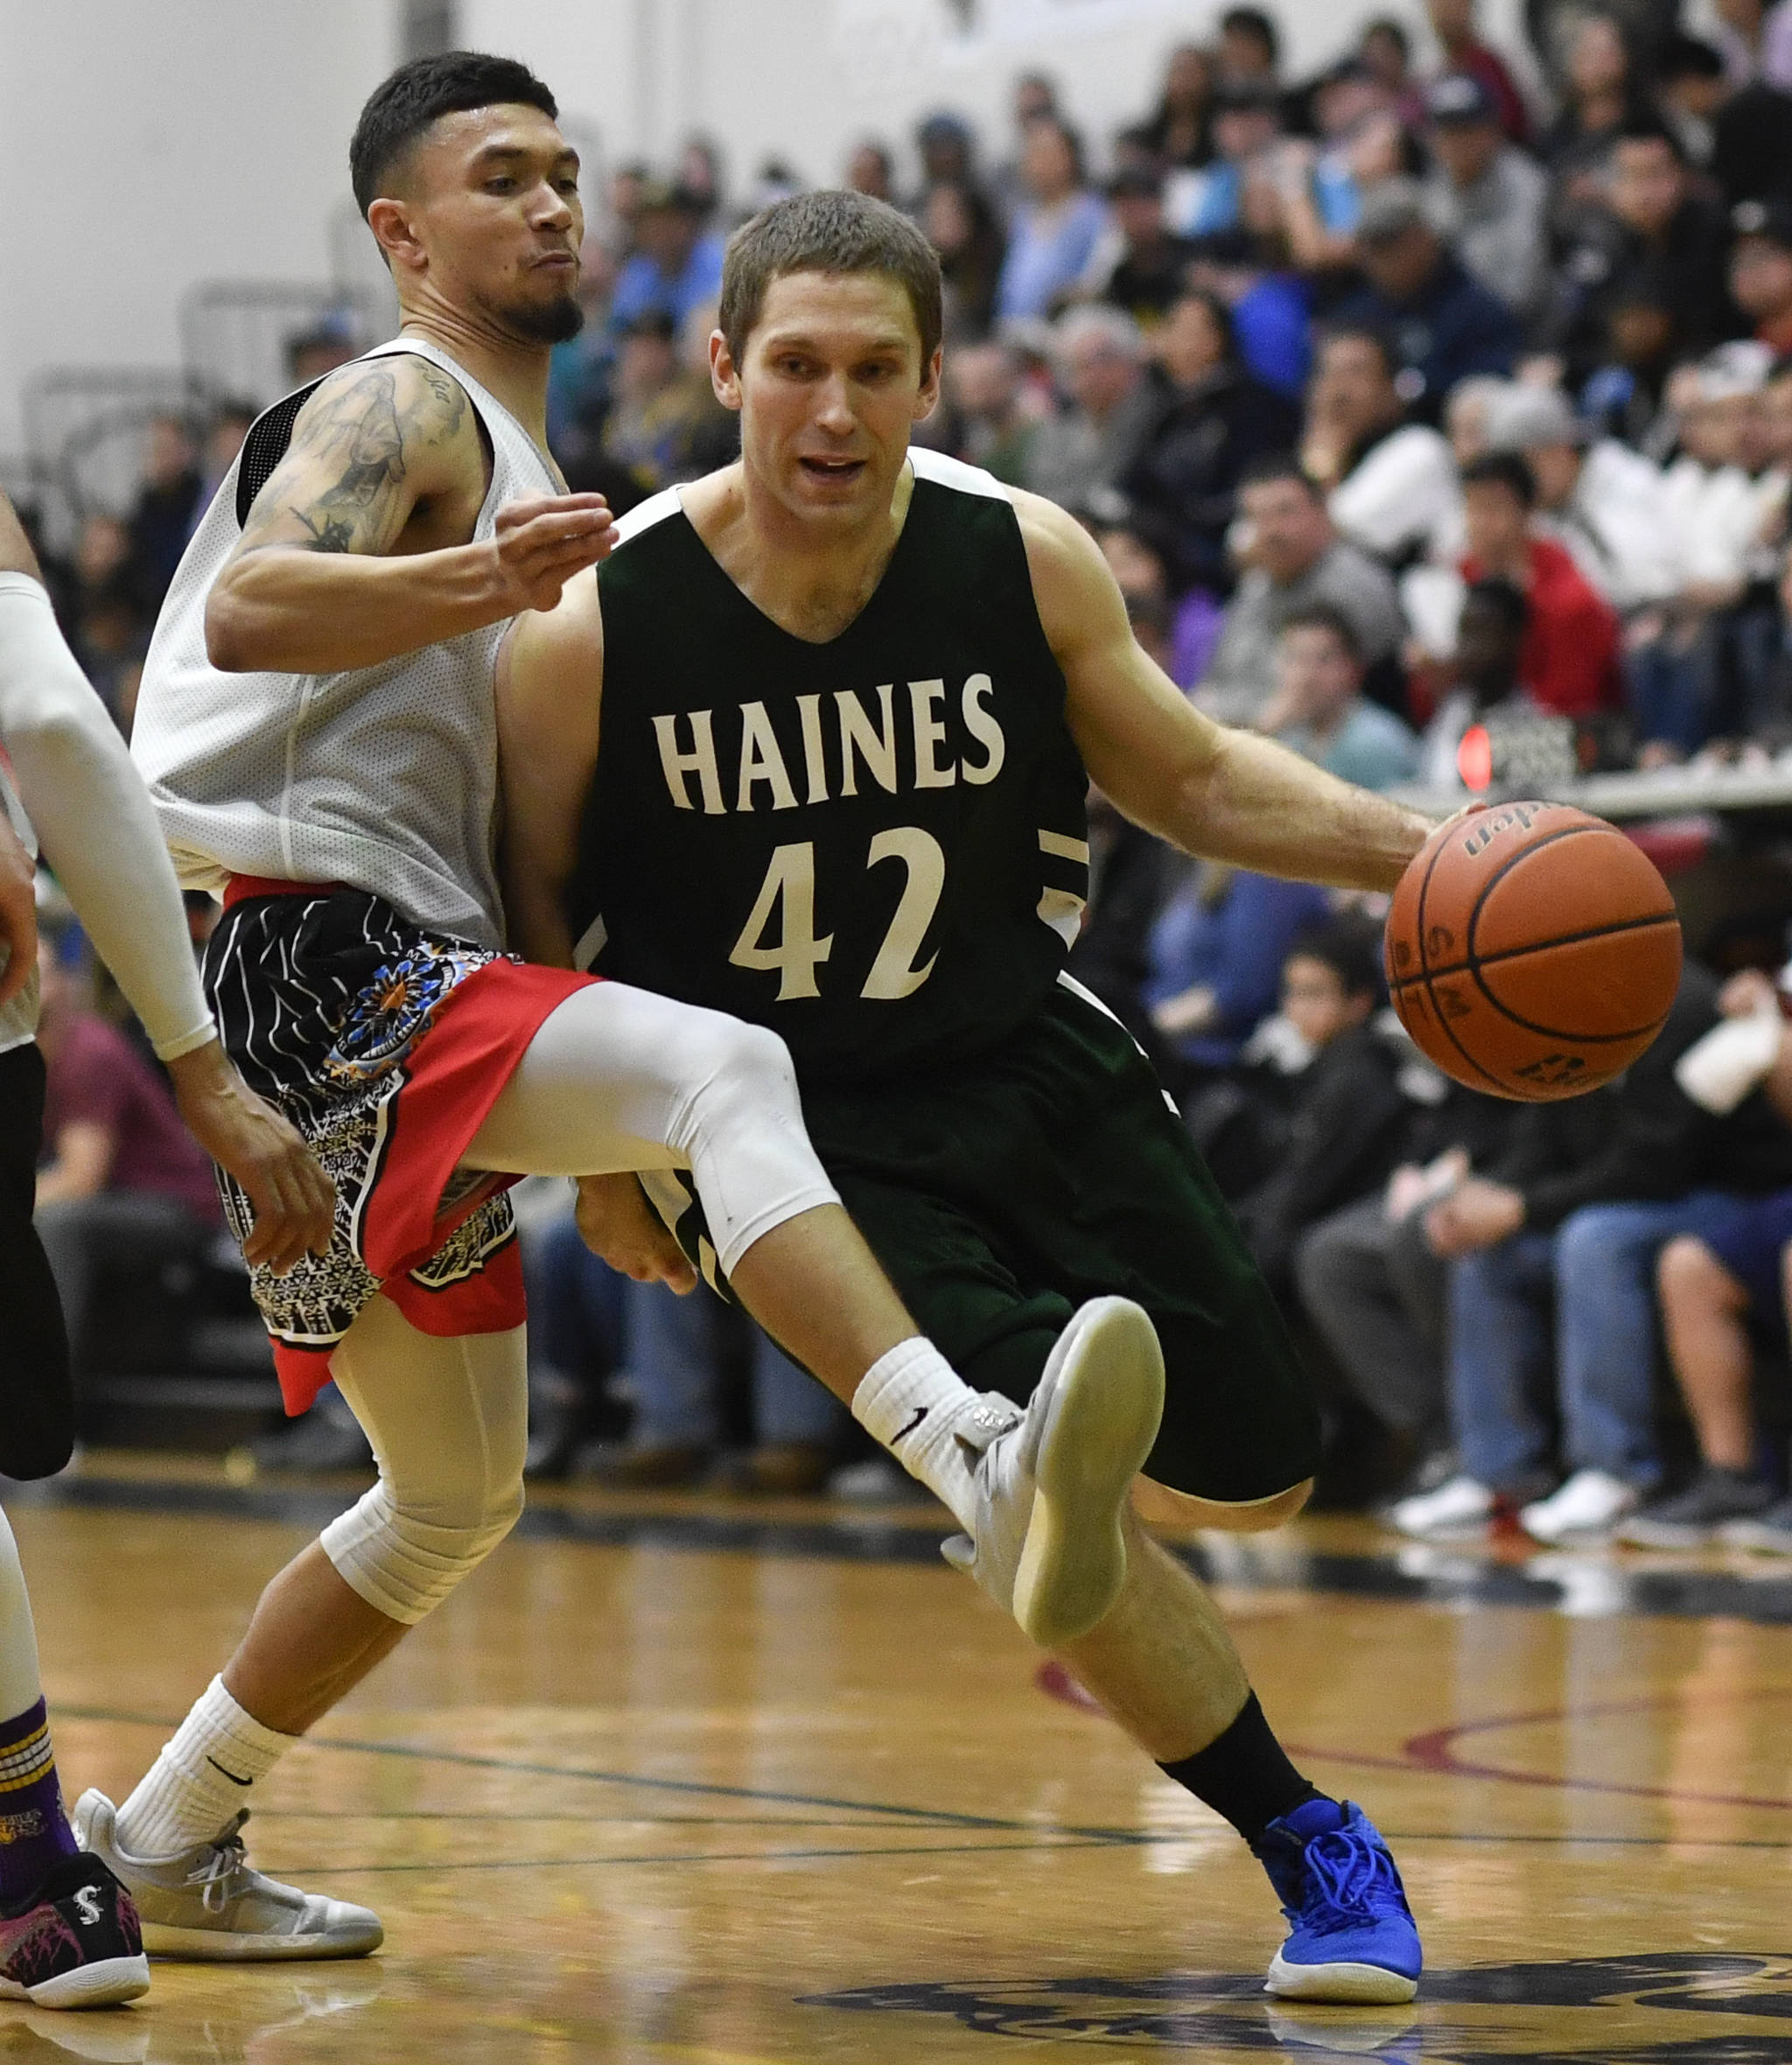 Angoon's Aquino Brinson attempts to stay in front of Haines' Kyle Fossman in the B final at the Gold Medal Basketball Tournament on Saturday, March 23, 2019. Haines won 88-80. (Michael Penn | Juneau Empire)